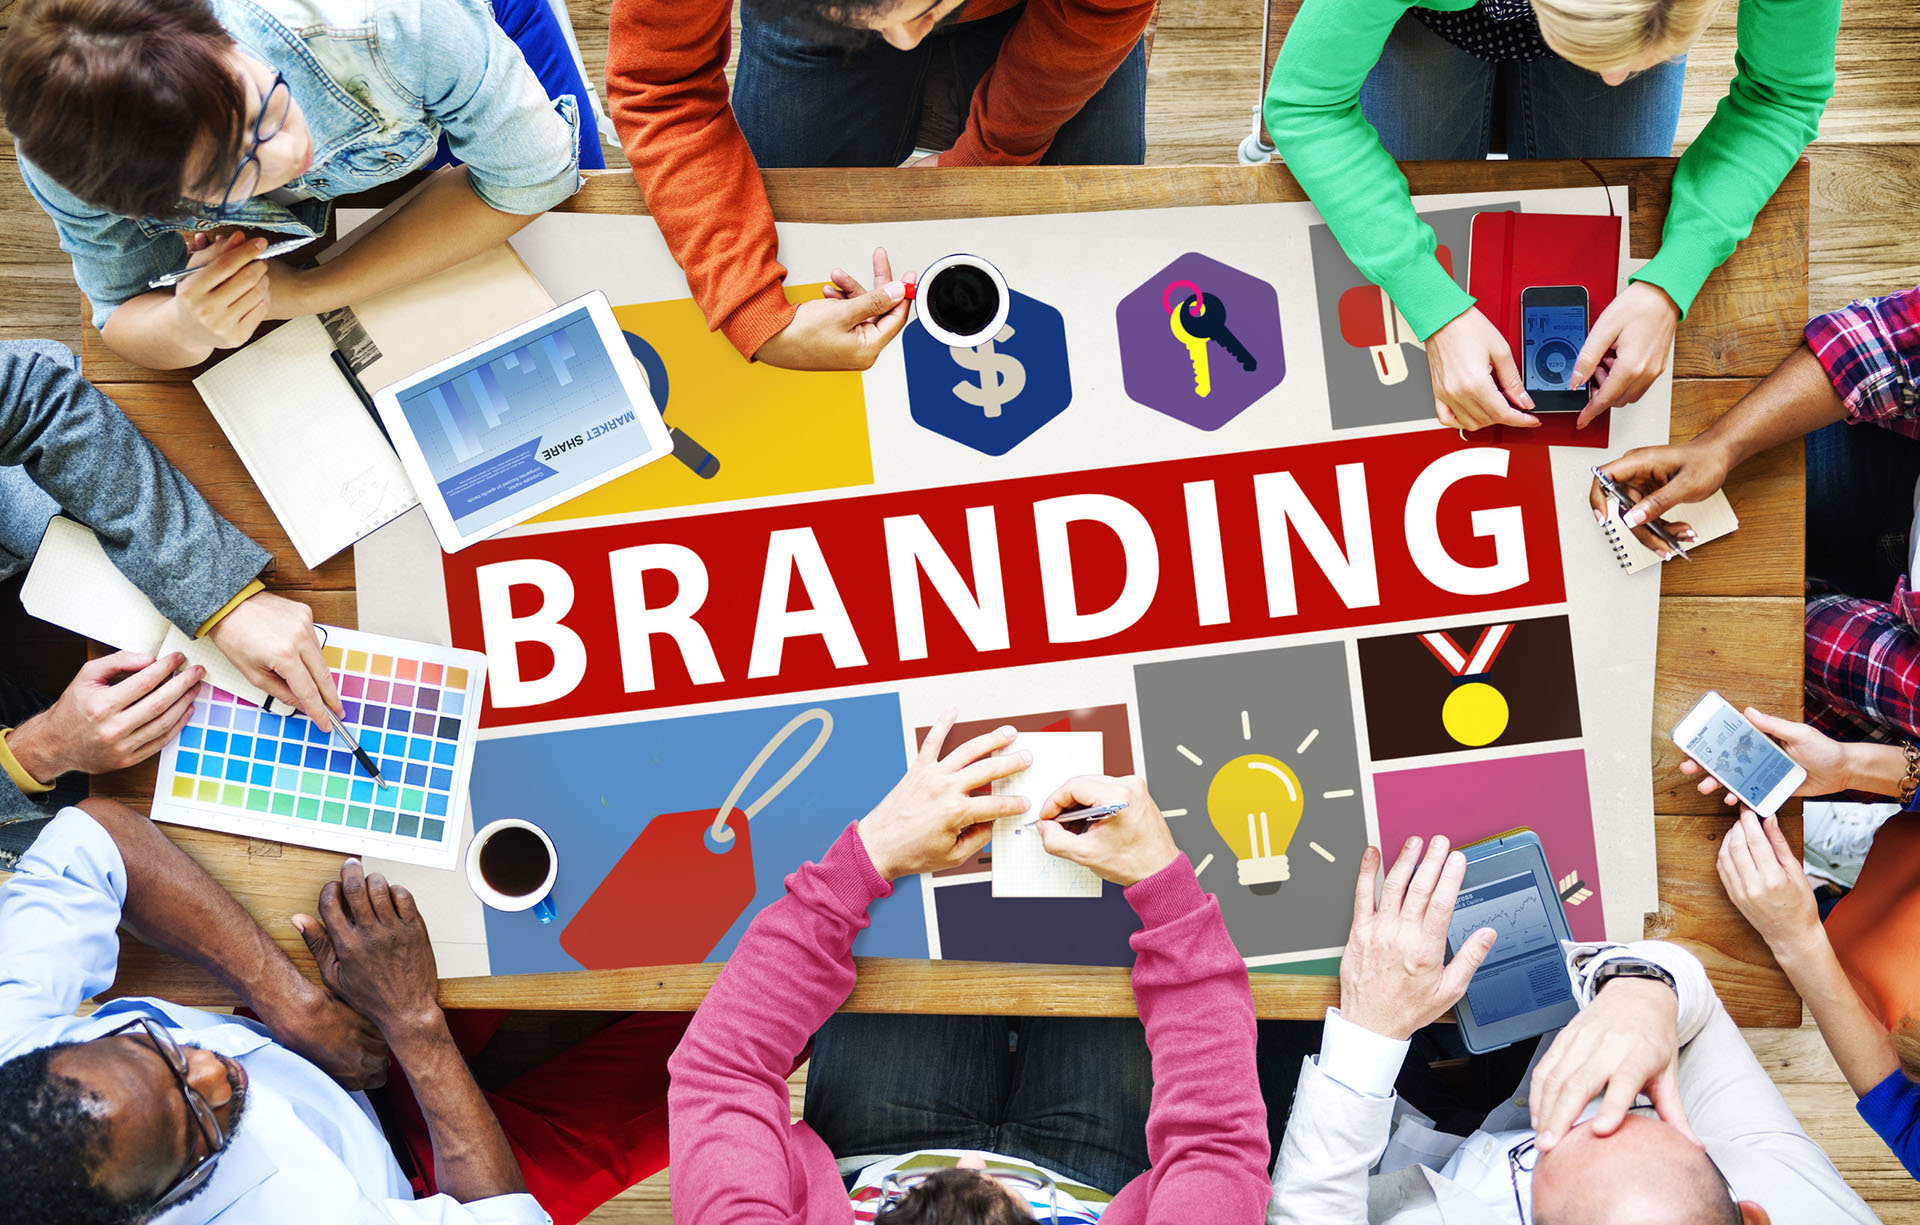 Group building logos and branding